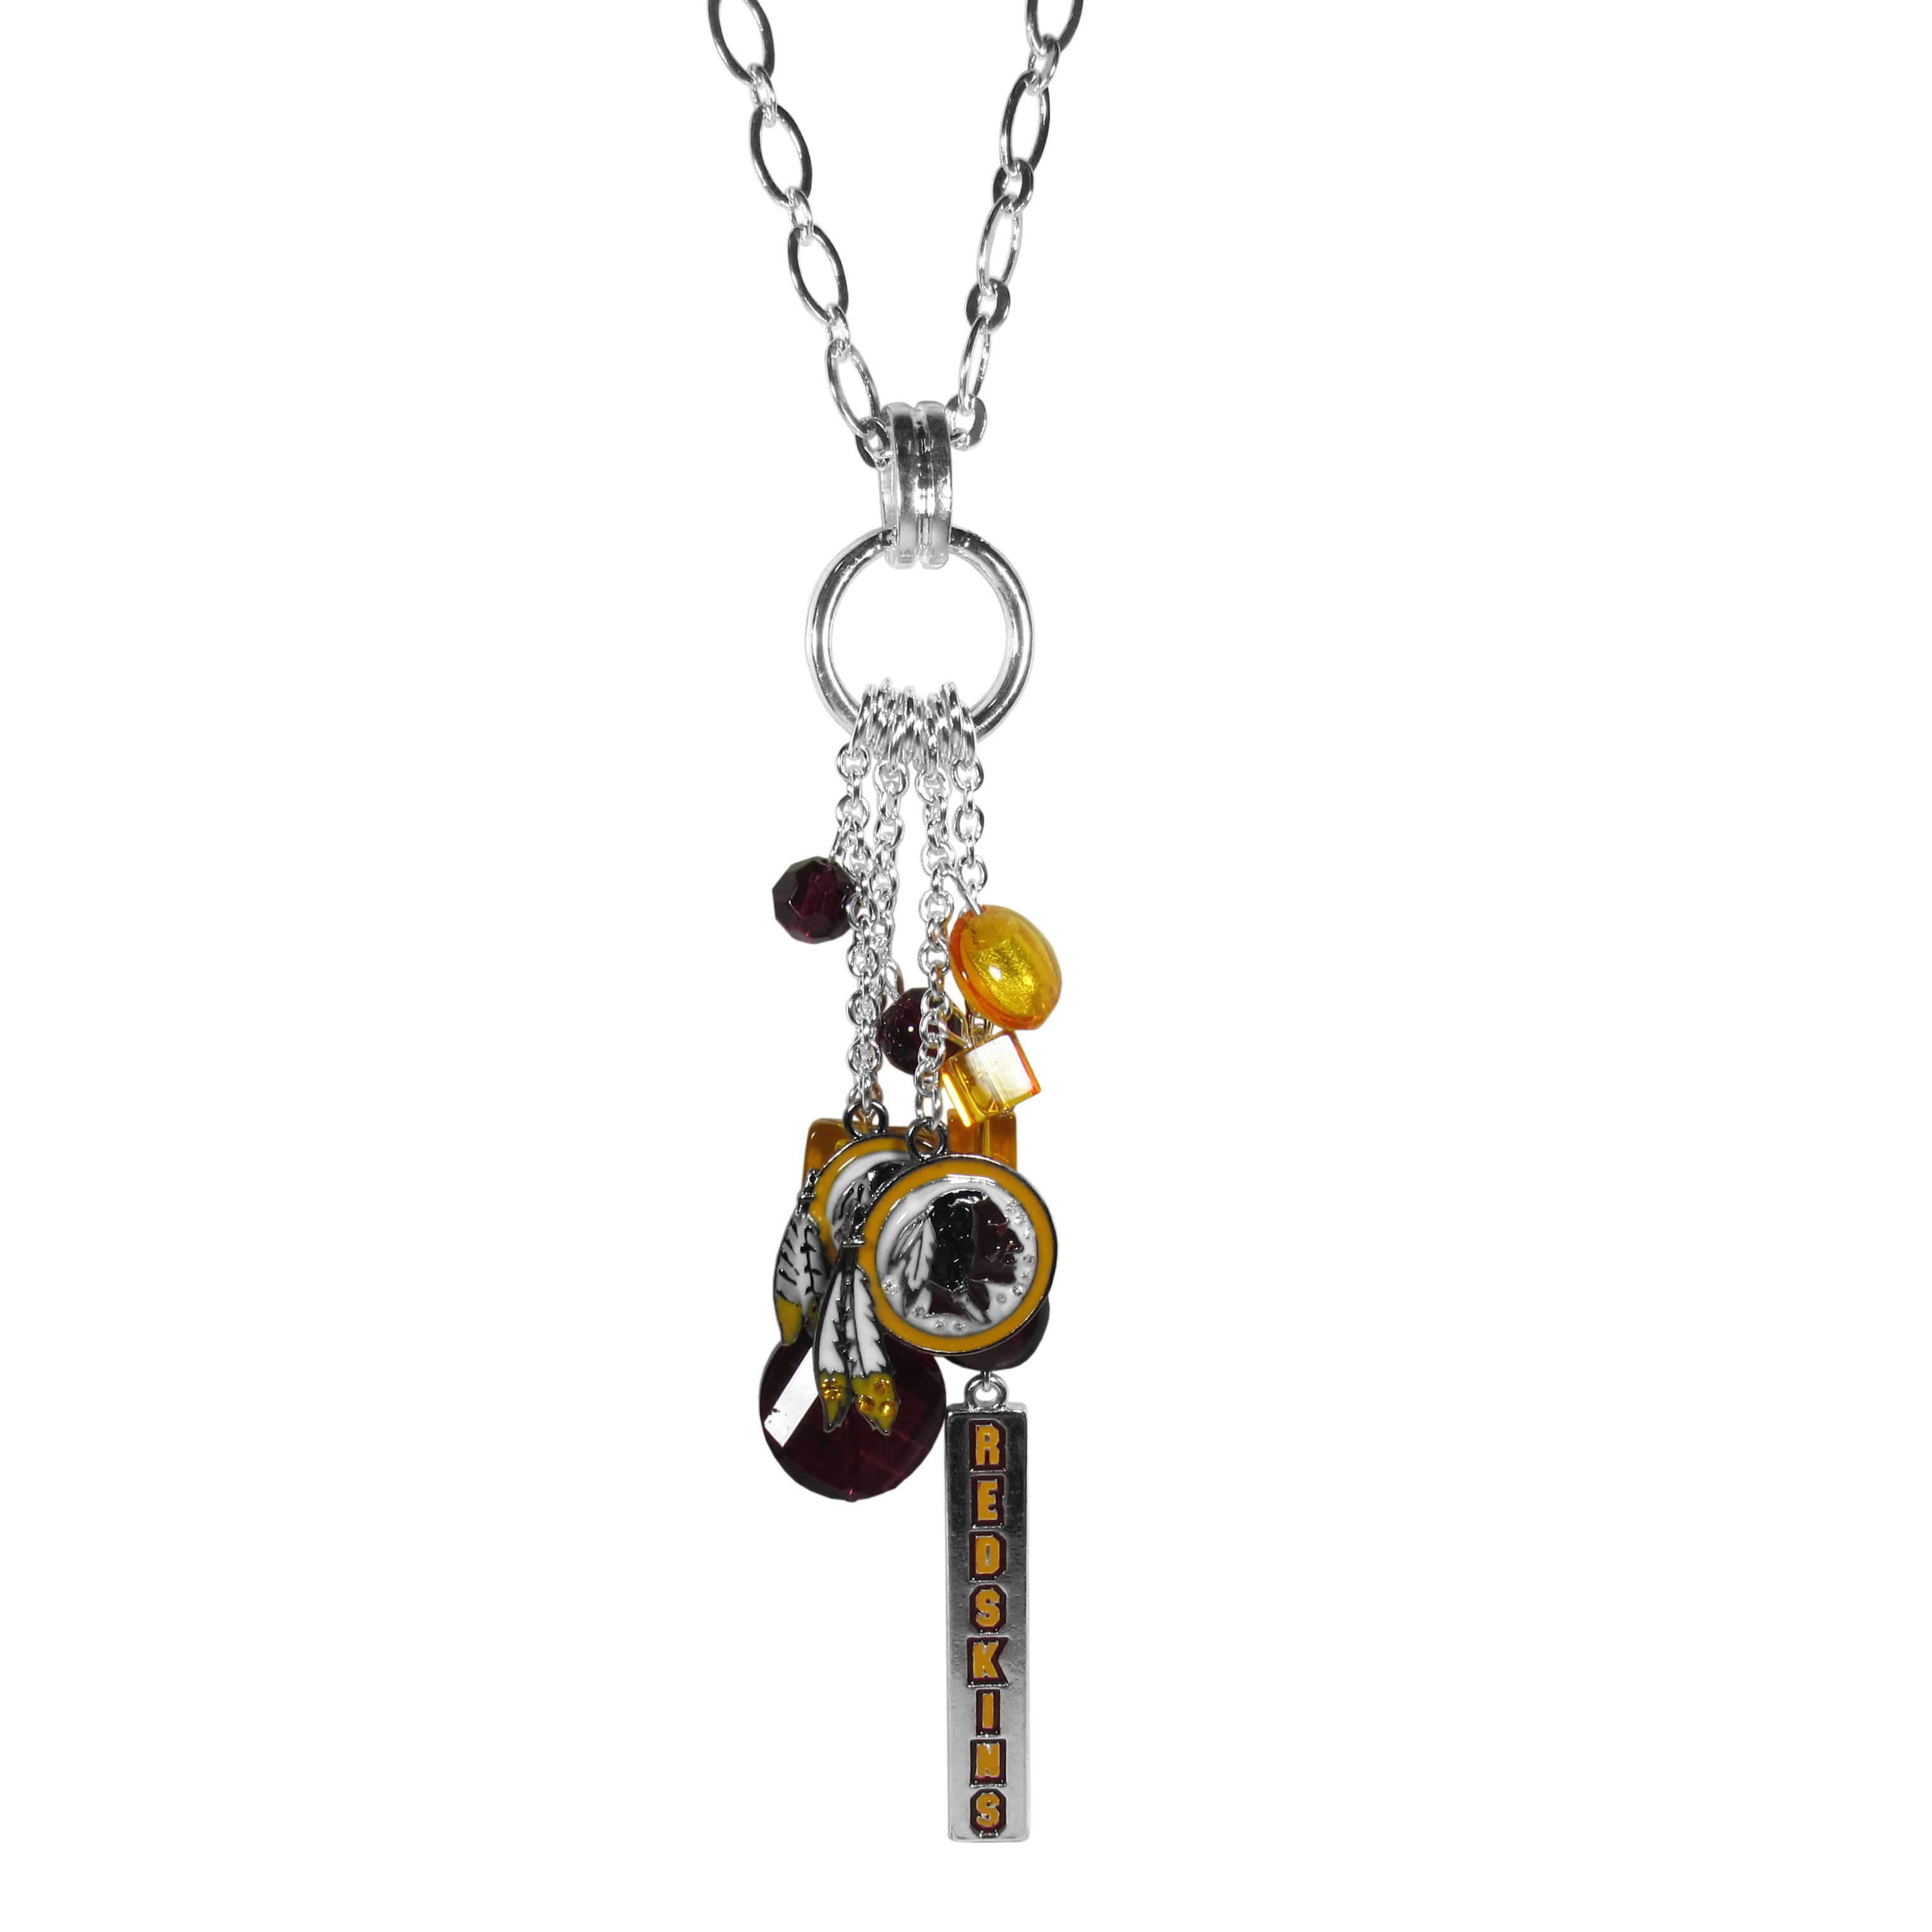 Washington Redskins Cluster Necklace - Our trendy cluster necklace makes a big statement with a 30 inch, silver plated, link chain that features a stylish cluster of Washington Redskins charms that hang an additional 4 inches off of the chain. This bold fashion jewelry piece has 4 chain lenghts in the cluster that have alternating color bauble beads and 2 metal team charms, one with crystals and a long bar charm with the team name.